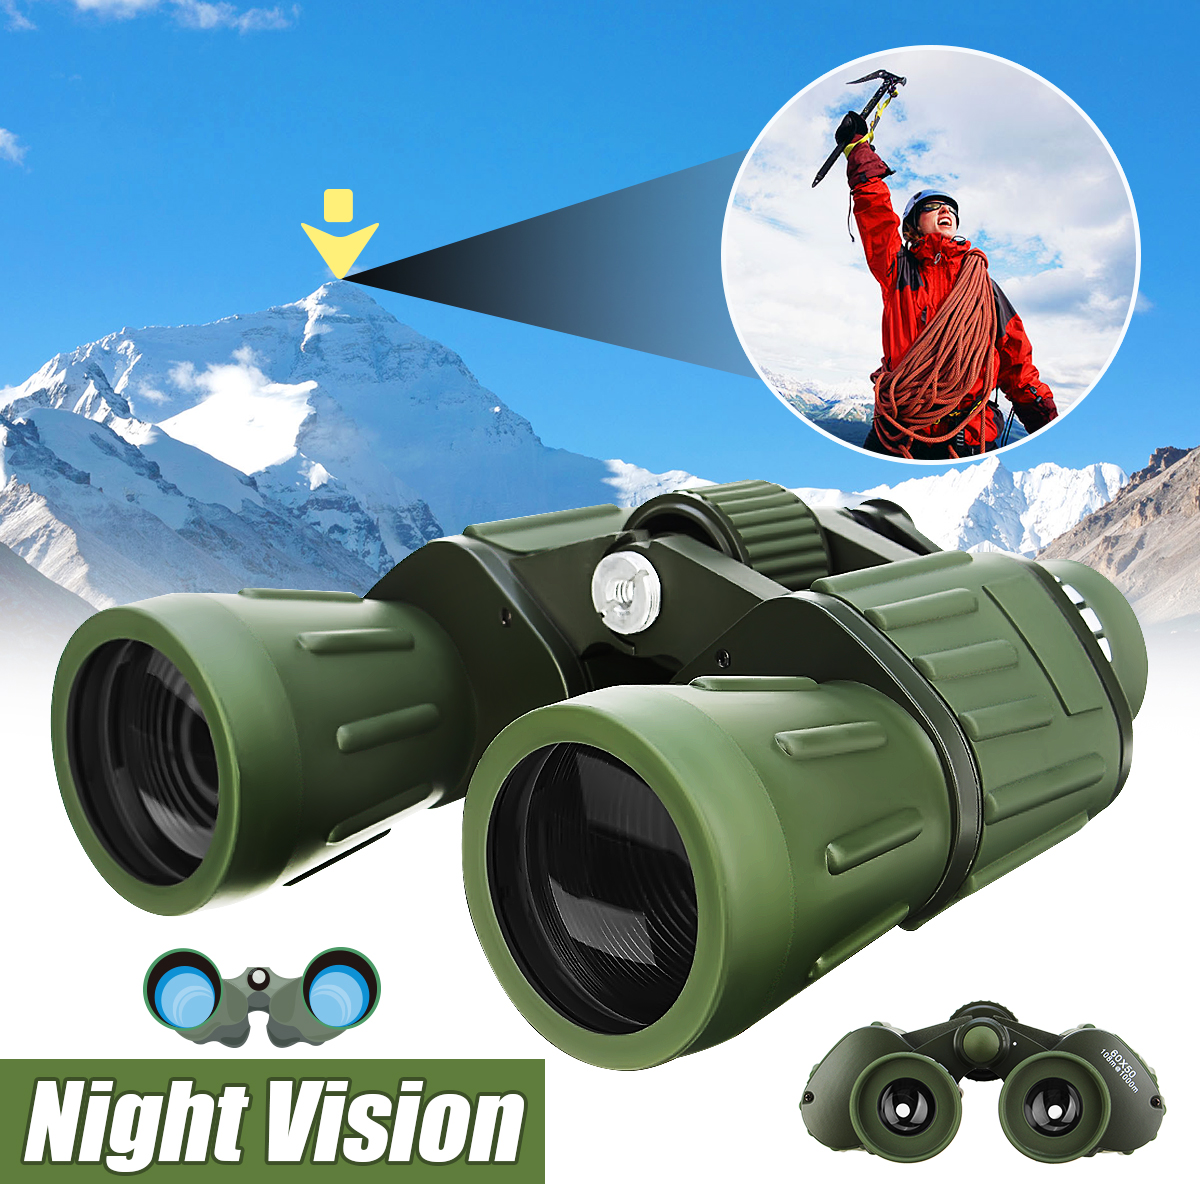 SGODDE 60x50 Night Vision HD Binoculars Military Zoom Powerful Adjustment Outdoor Hunting Optics Astronomical Telescope